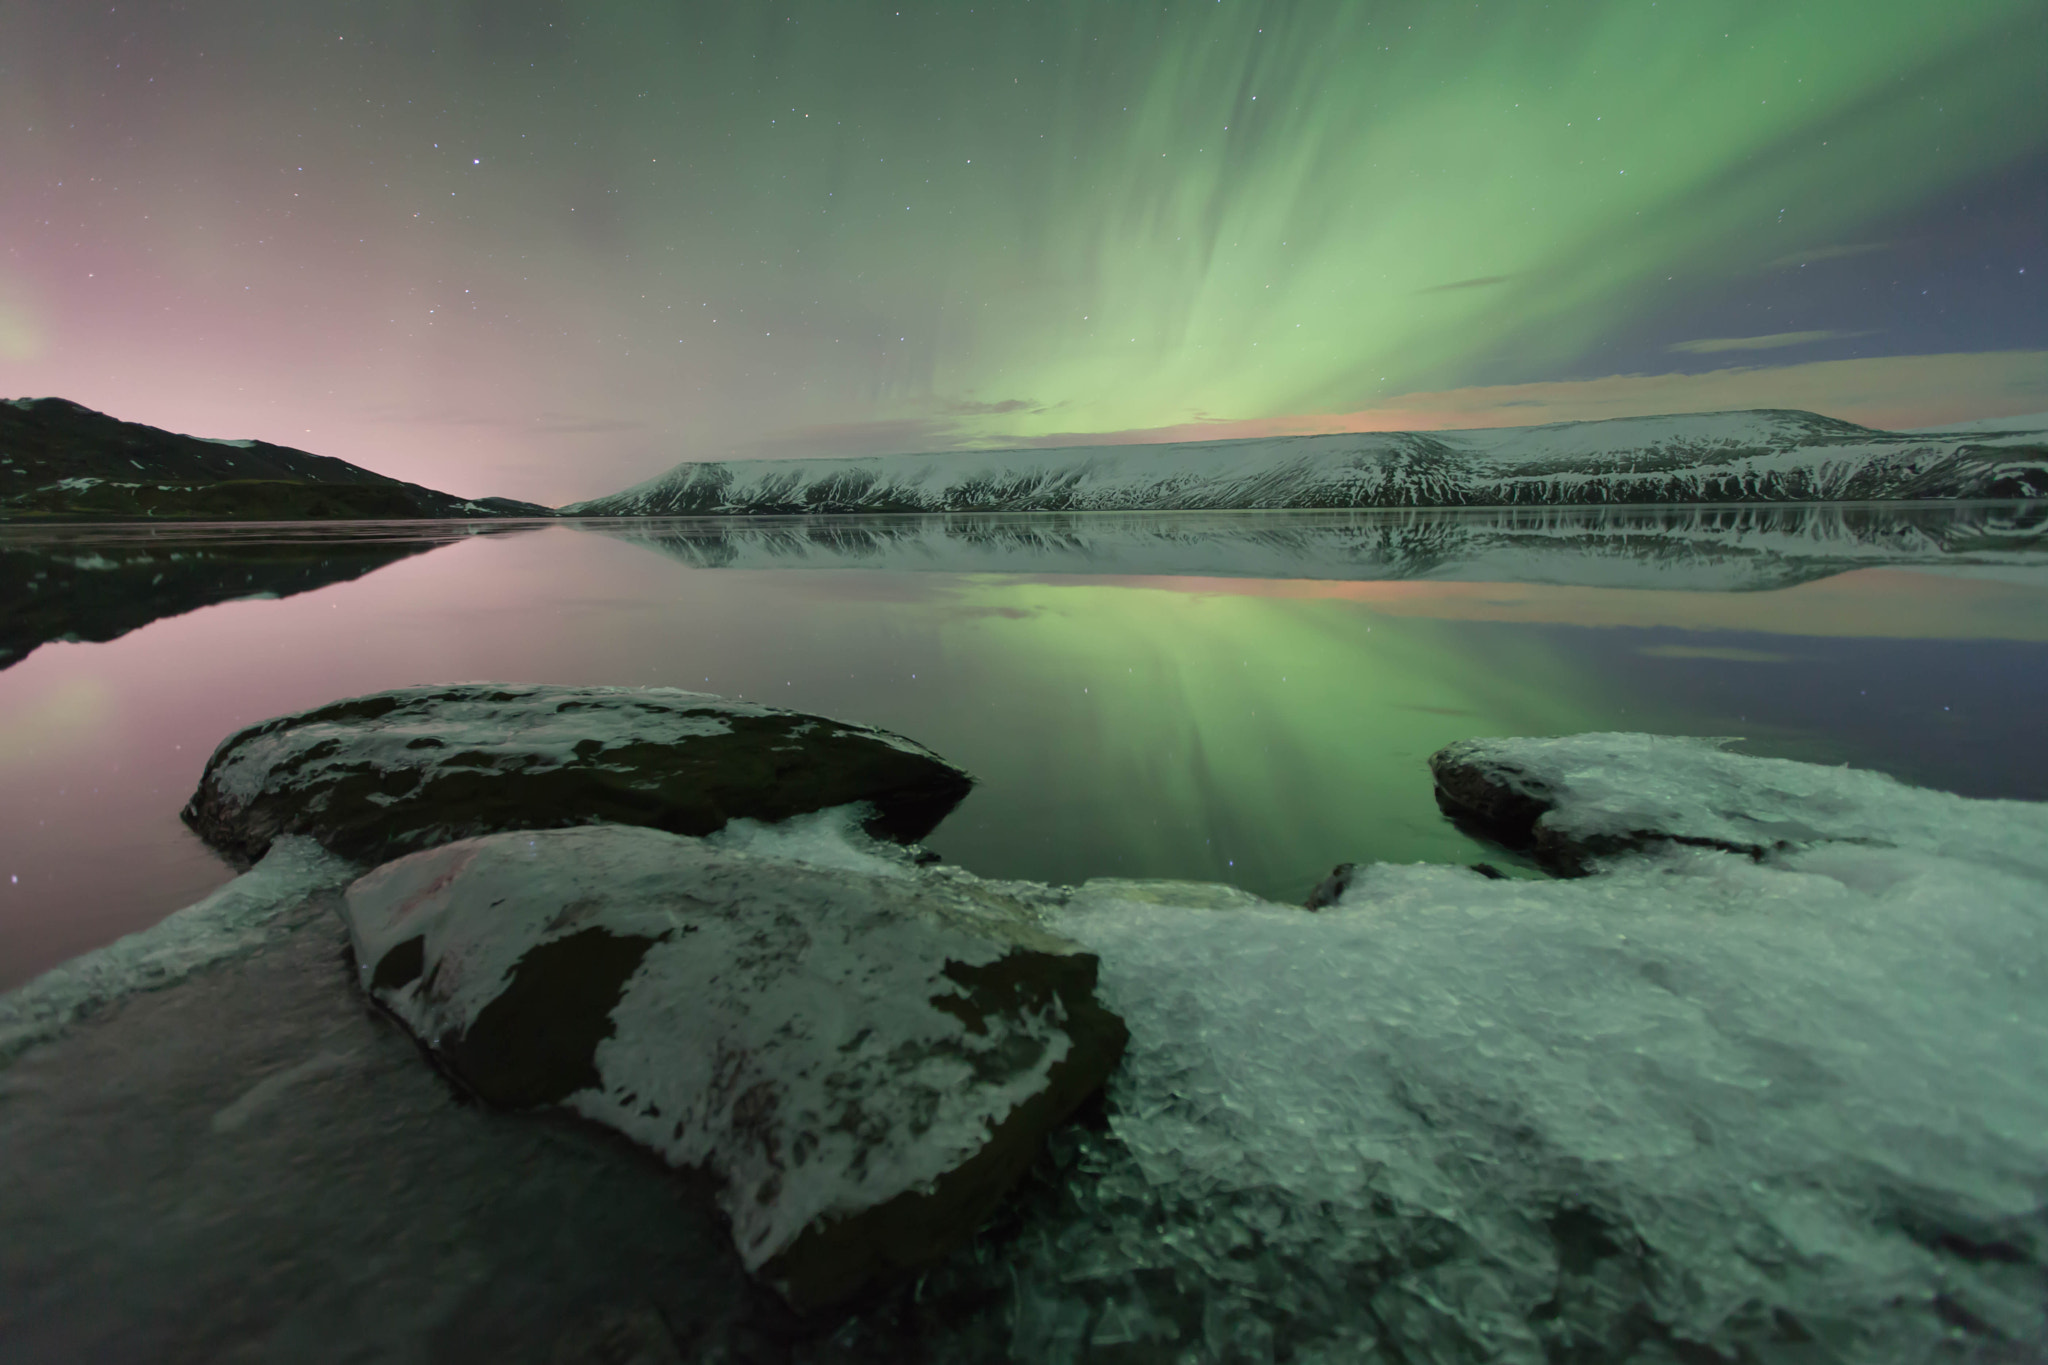 Photograph Iceland's Aurora Borealis by Jacky CW on 500px